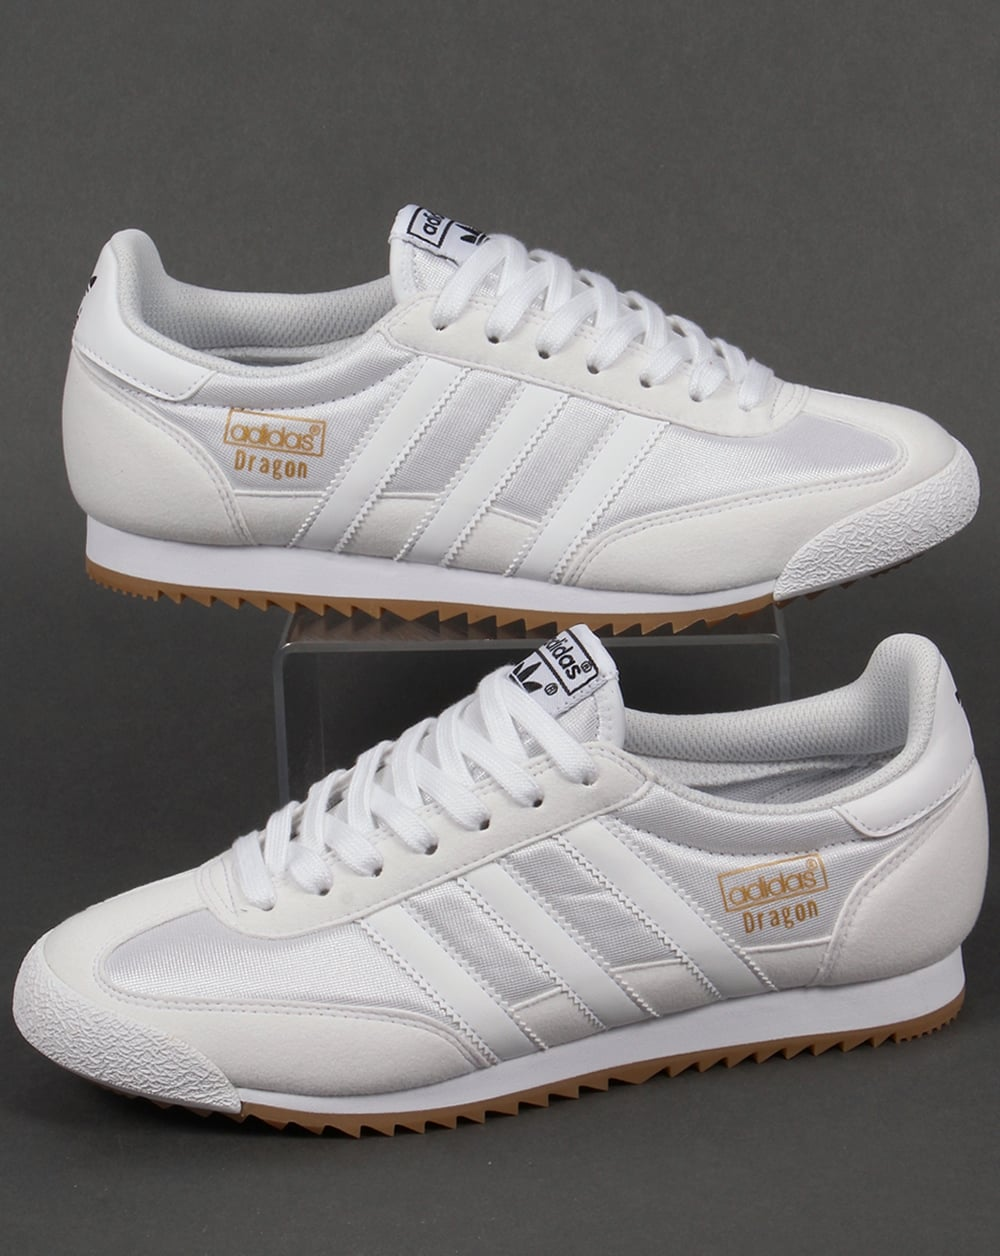 adidas Trainers Adidas Dragon Trainers White White 0c652e354